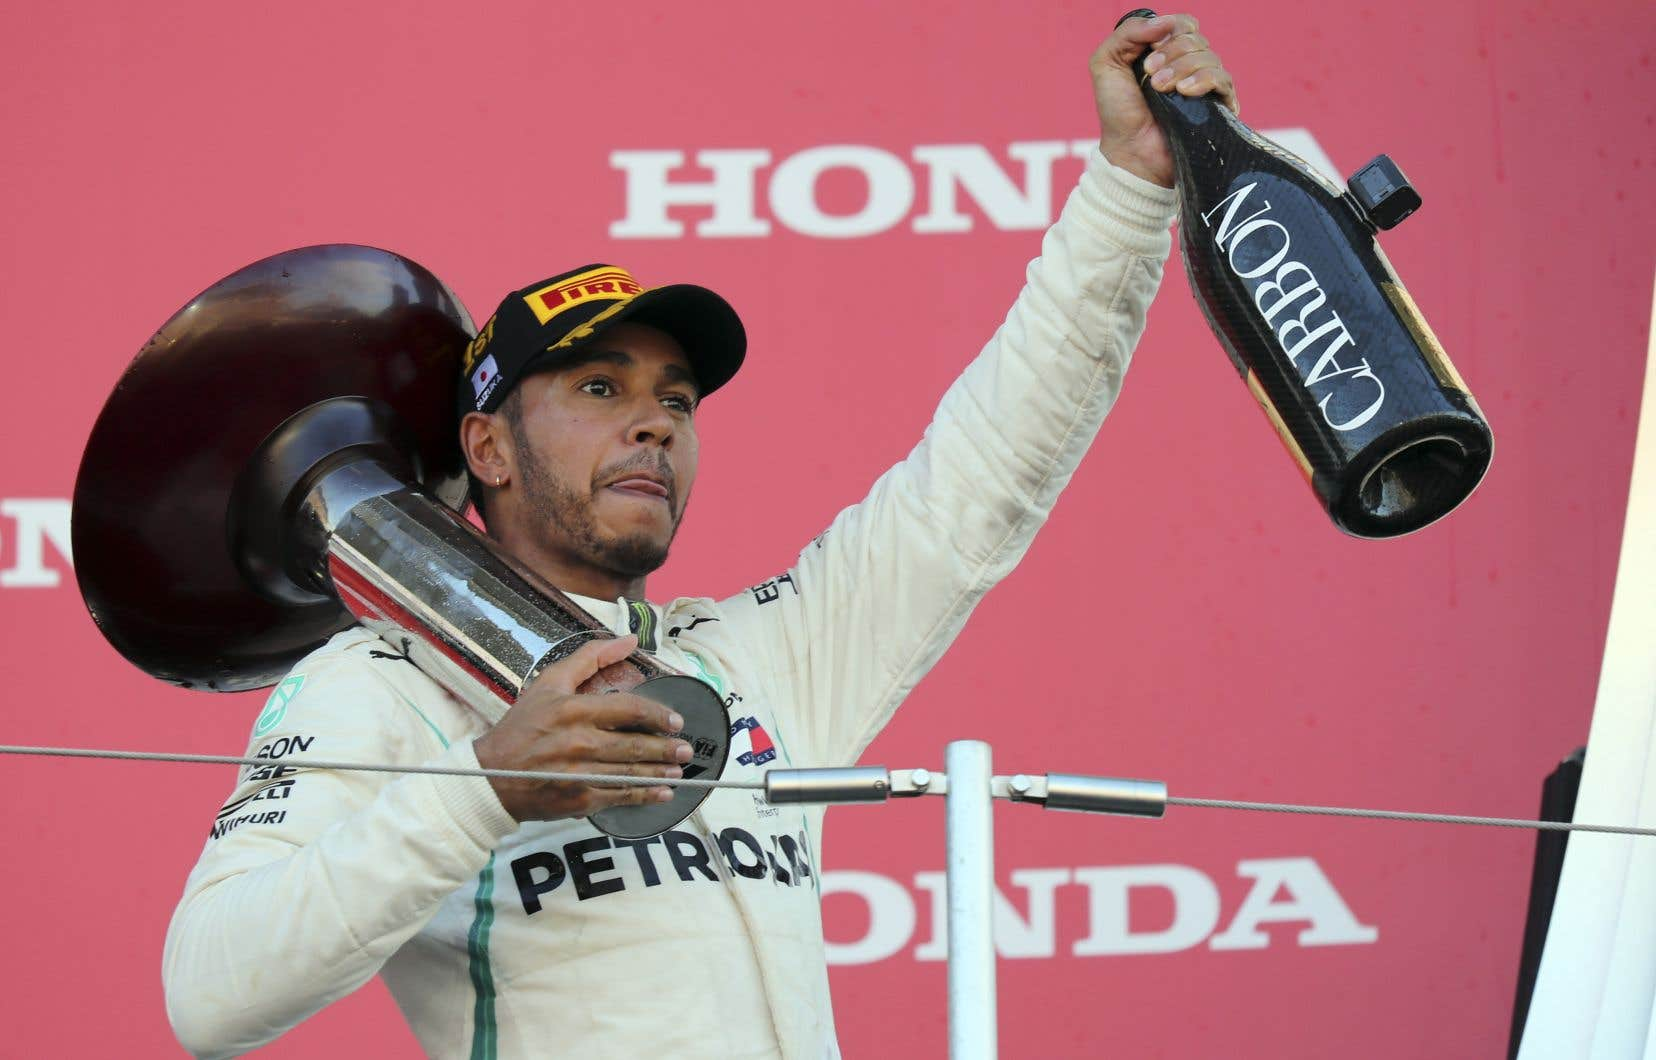 lewis hamilton remporte le grand prix du japon le devoir. Black Bedroom Furniture Sets. Home Design Ideas